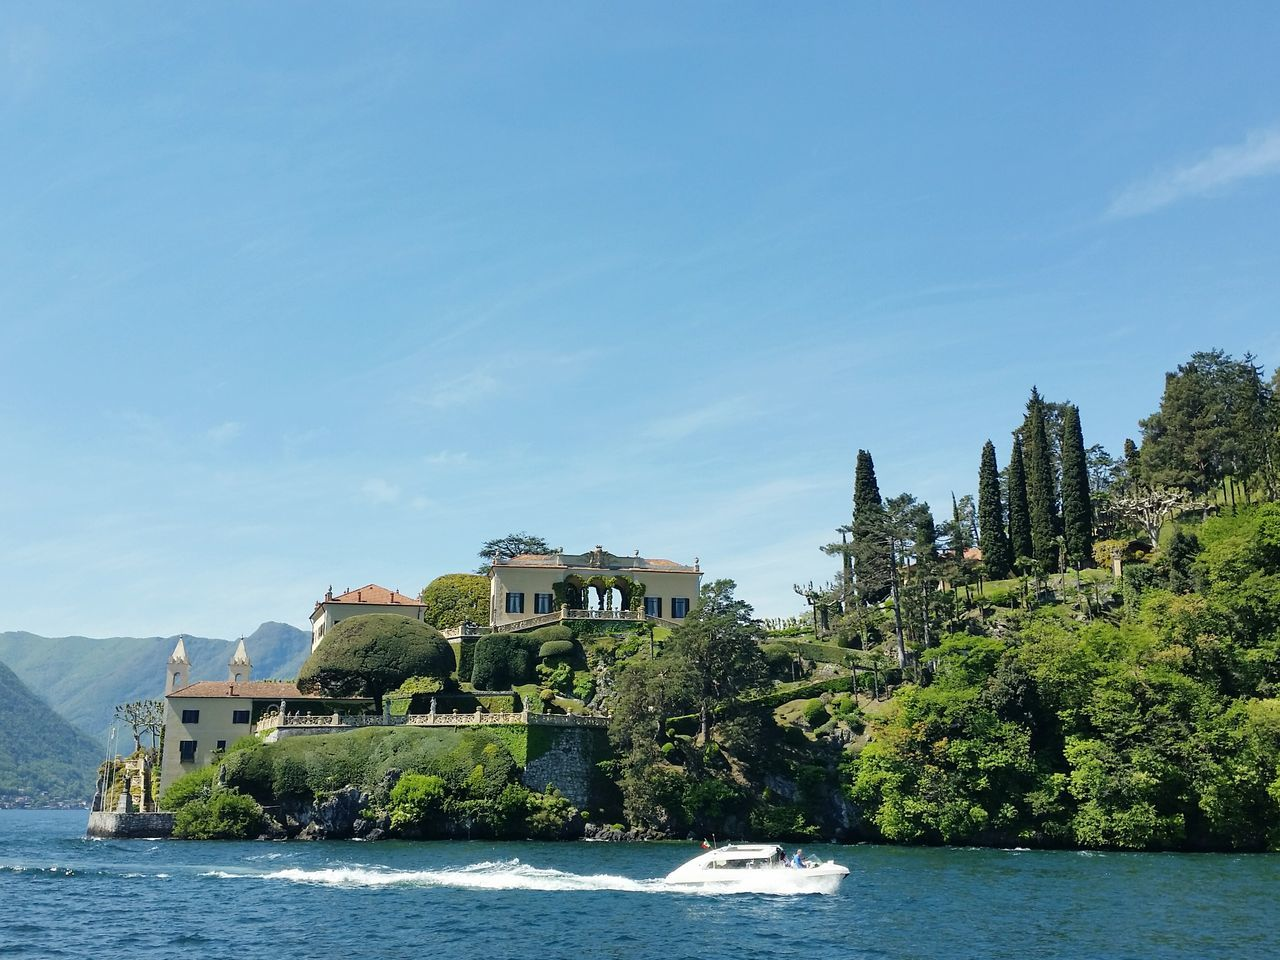 Lakecomo Como Lake Lake View Lakeshore Italy Italia Italian Architecture Built Structure Tree Water Clear Sky Sky Nature Waterfront Boat Boat Trip